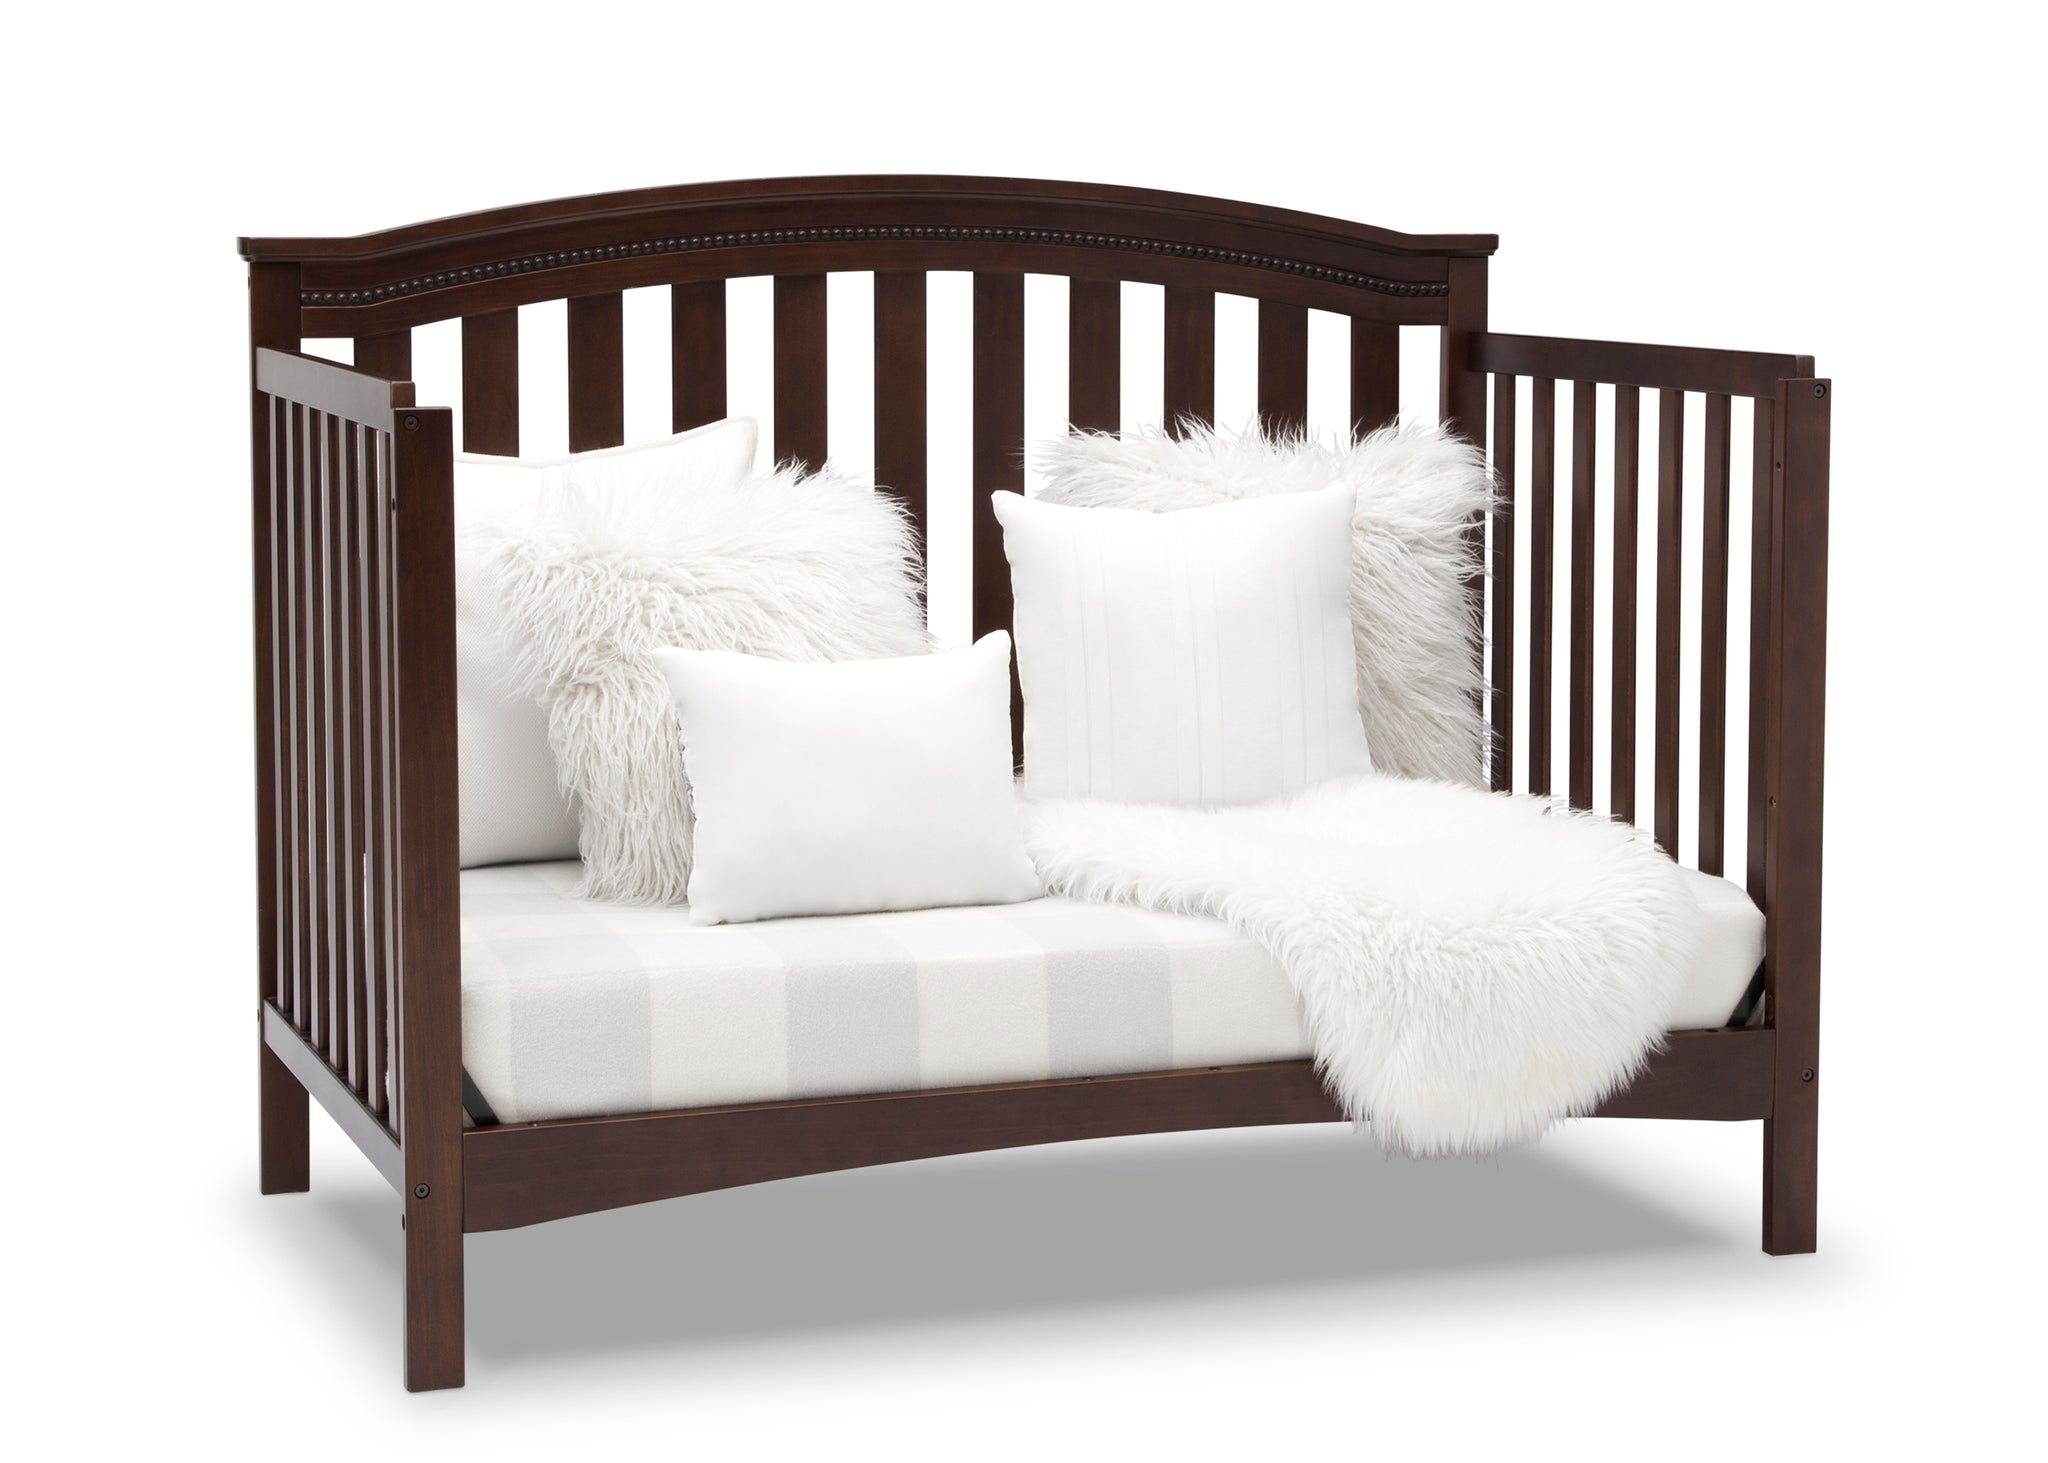 Delta Children Walnut Espresso (1324) Waverly 6-in-1 Convertible Crib, Right Sofa Silo View